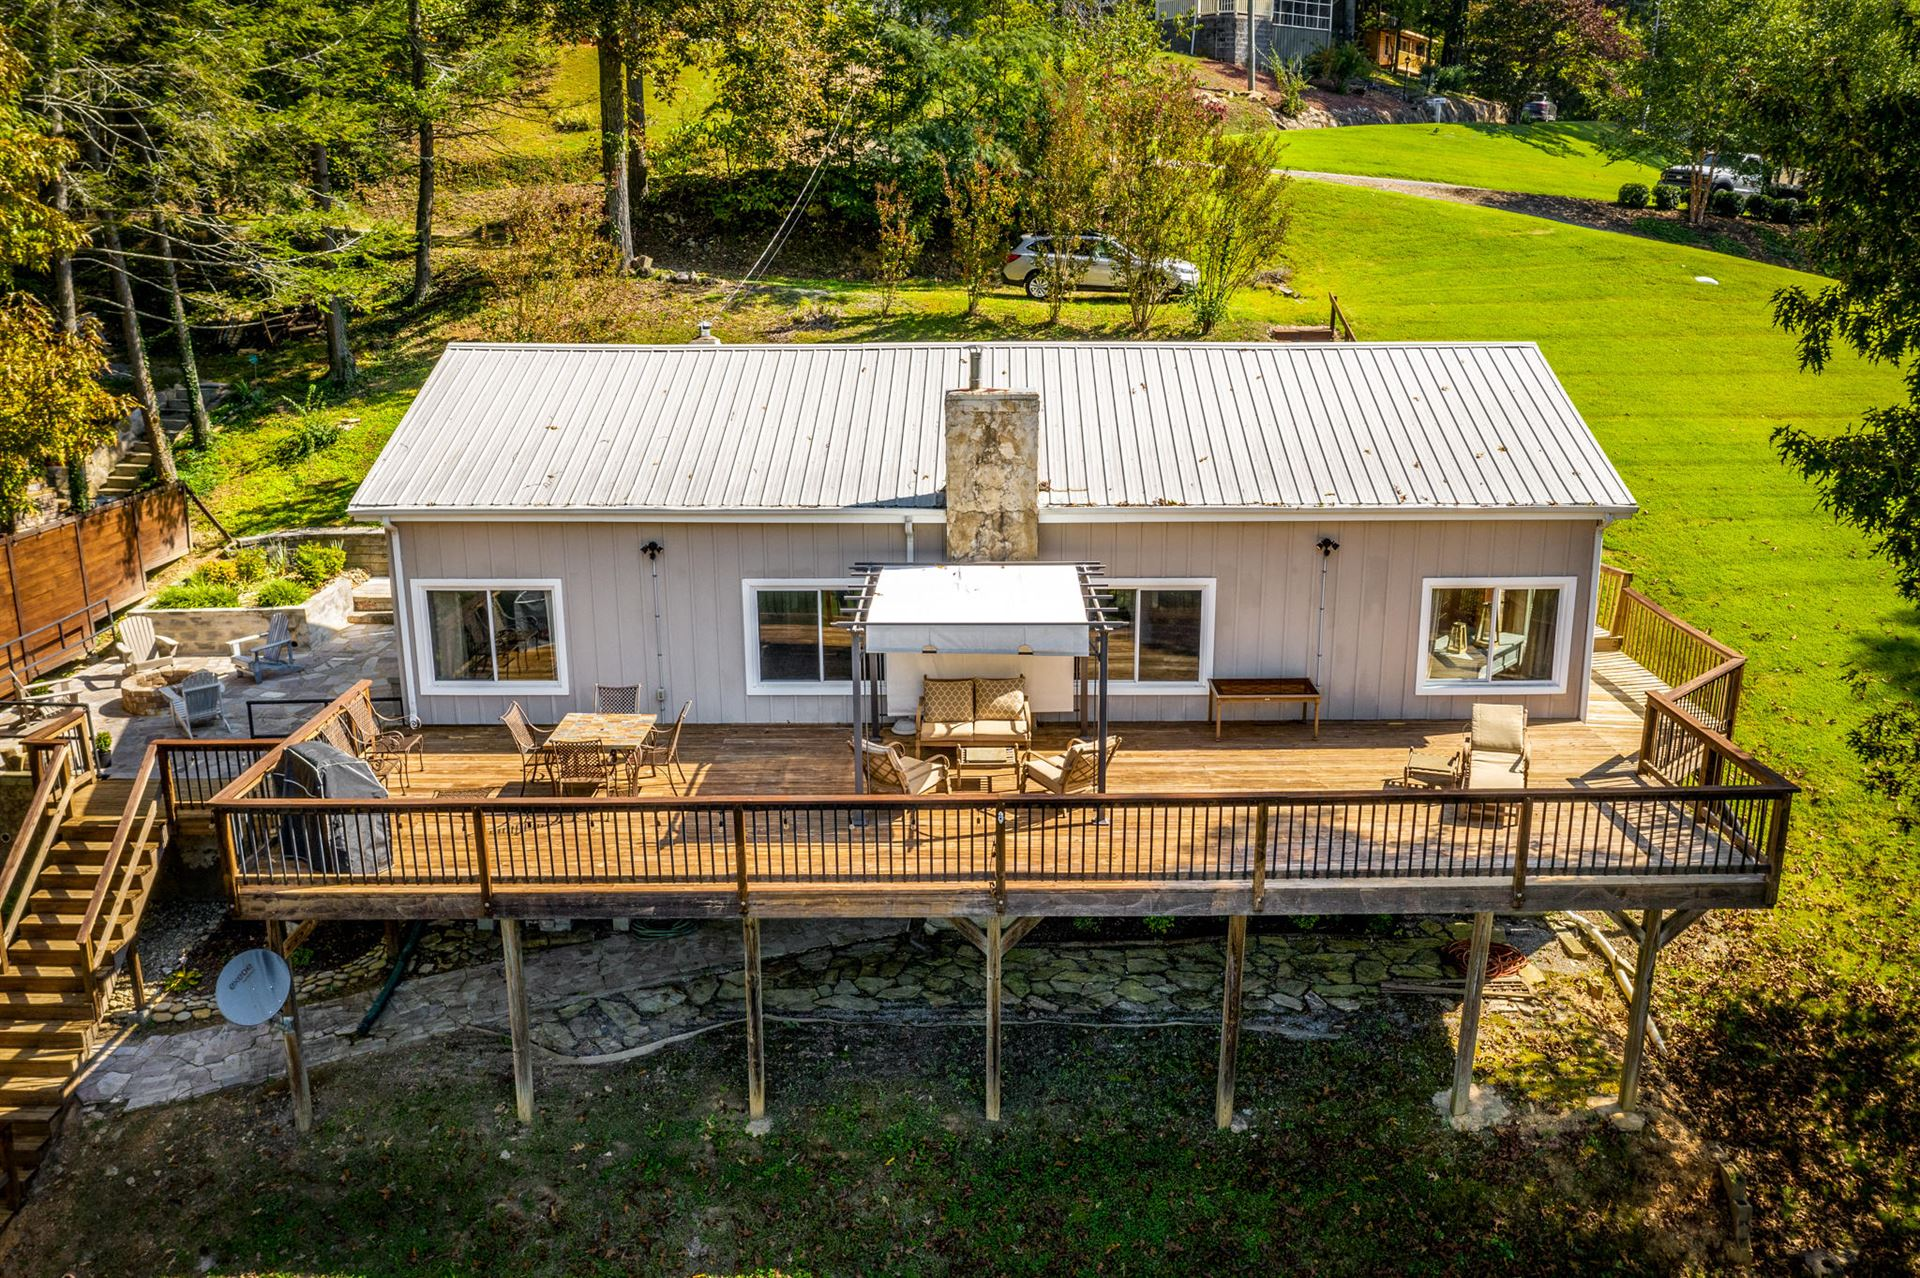 Photo for 325 Lakemont Drive, Mooresburg, TN 37811 (MLS # 1139766)